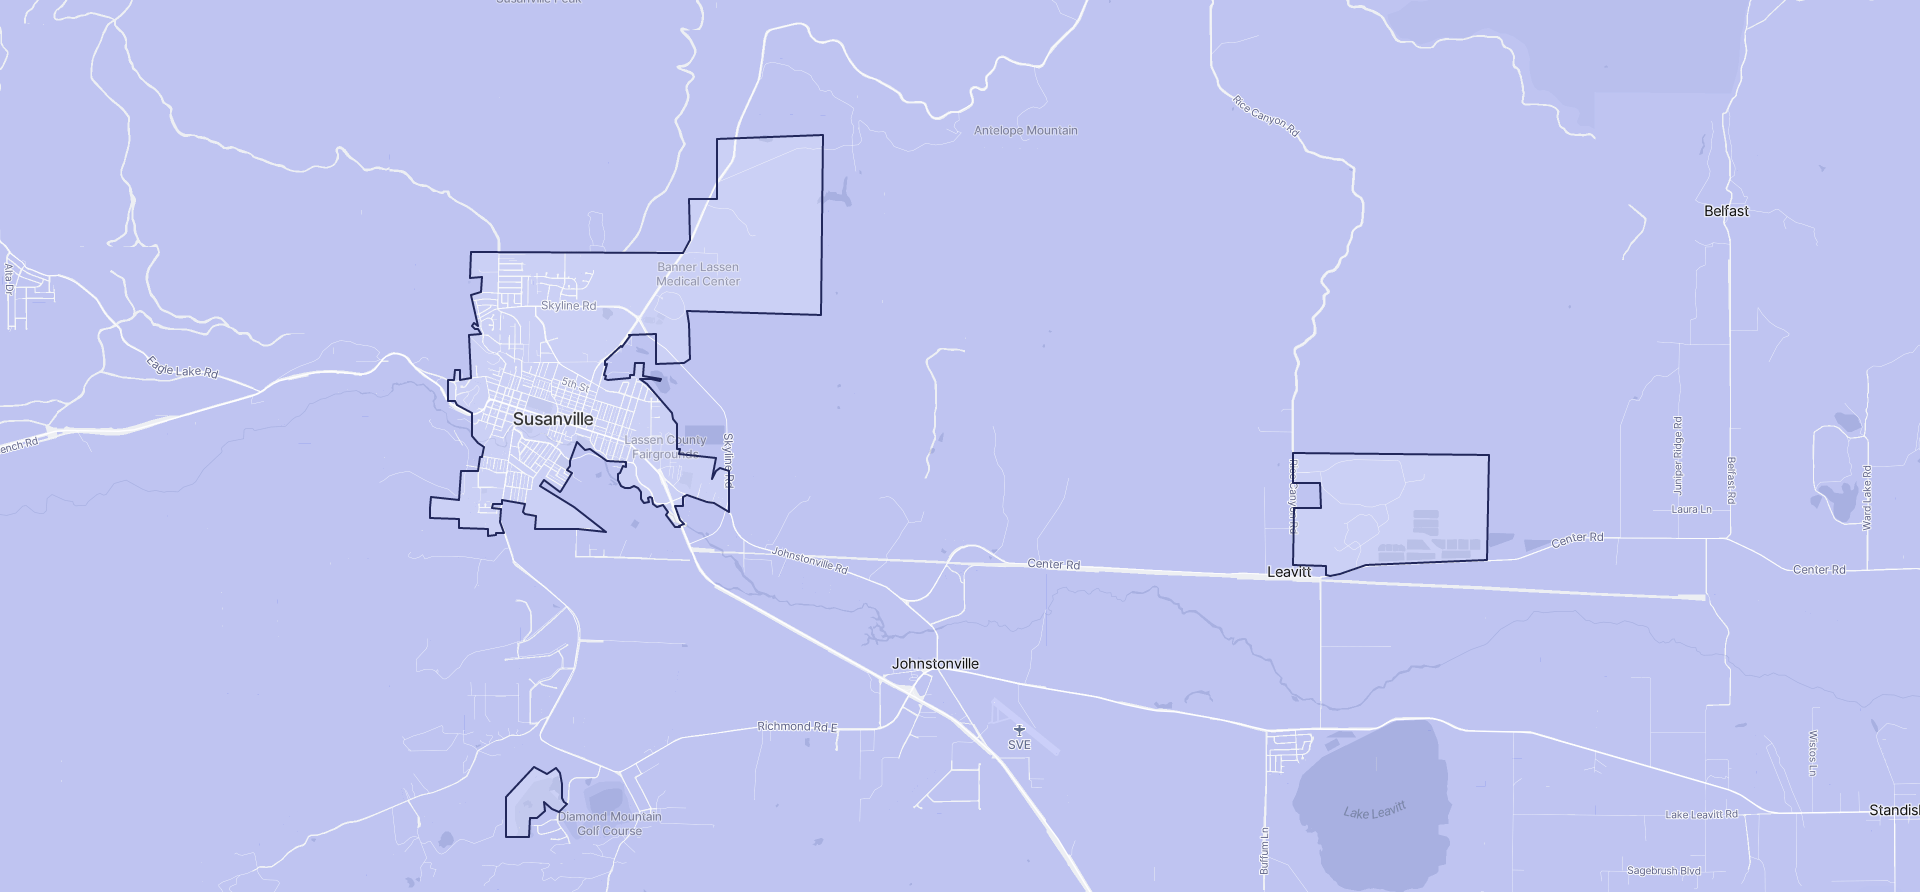 Image of Susanville boundaries on a map.